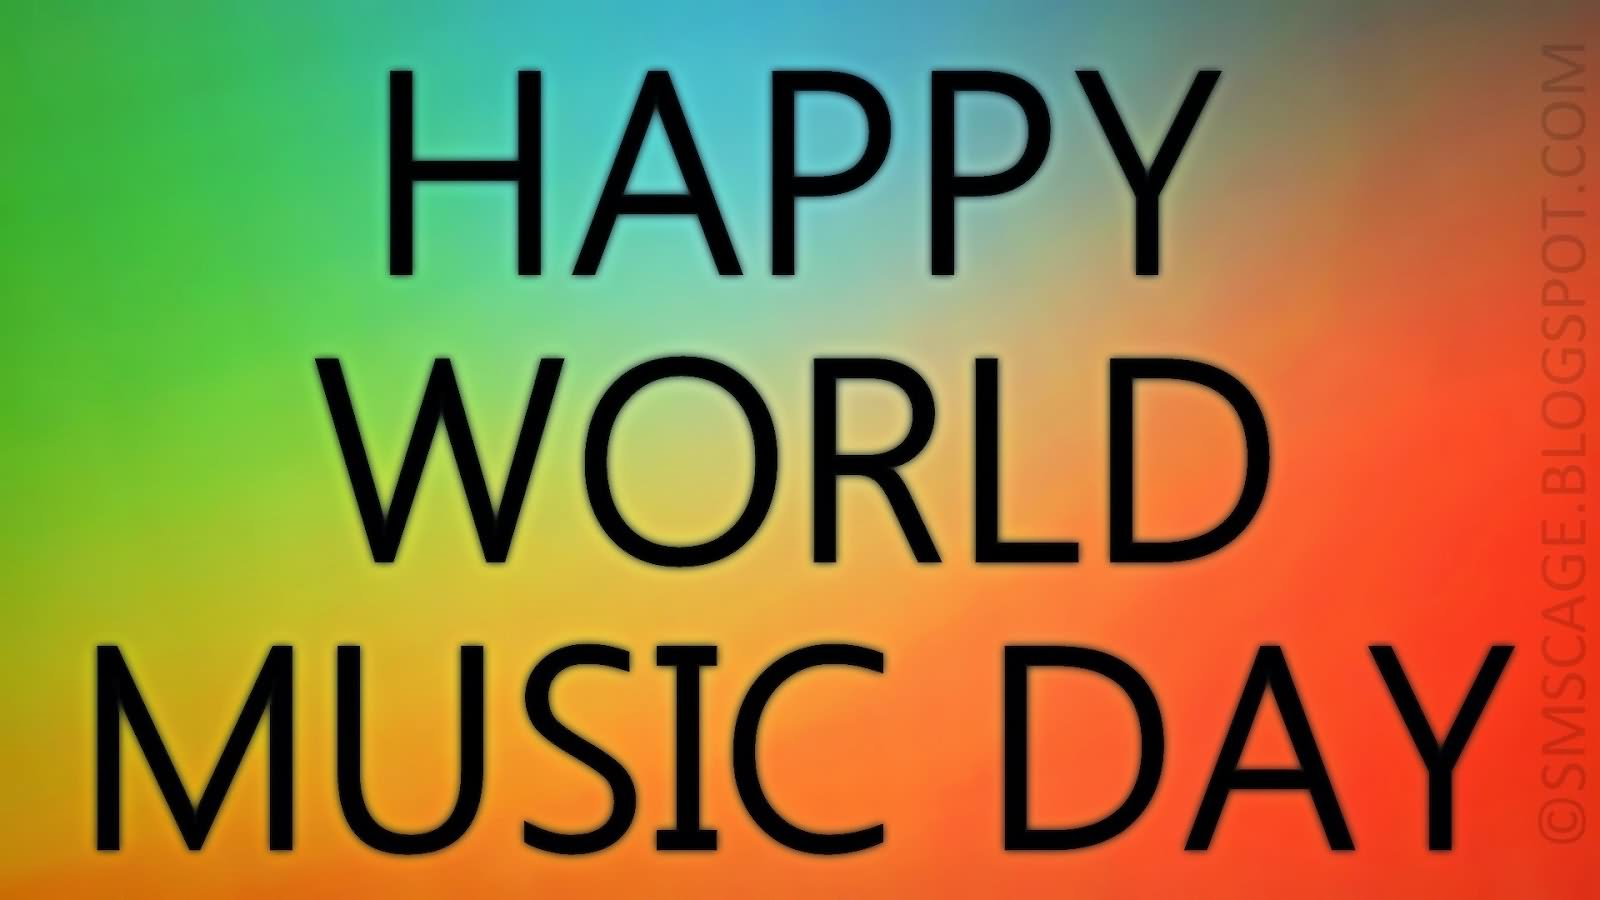 Happy World Music Day 21 June Wishes Image Message